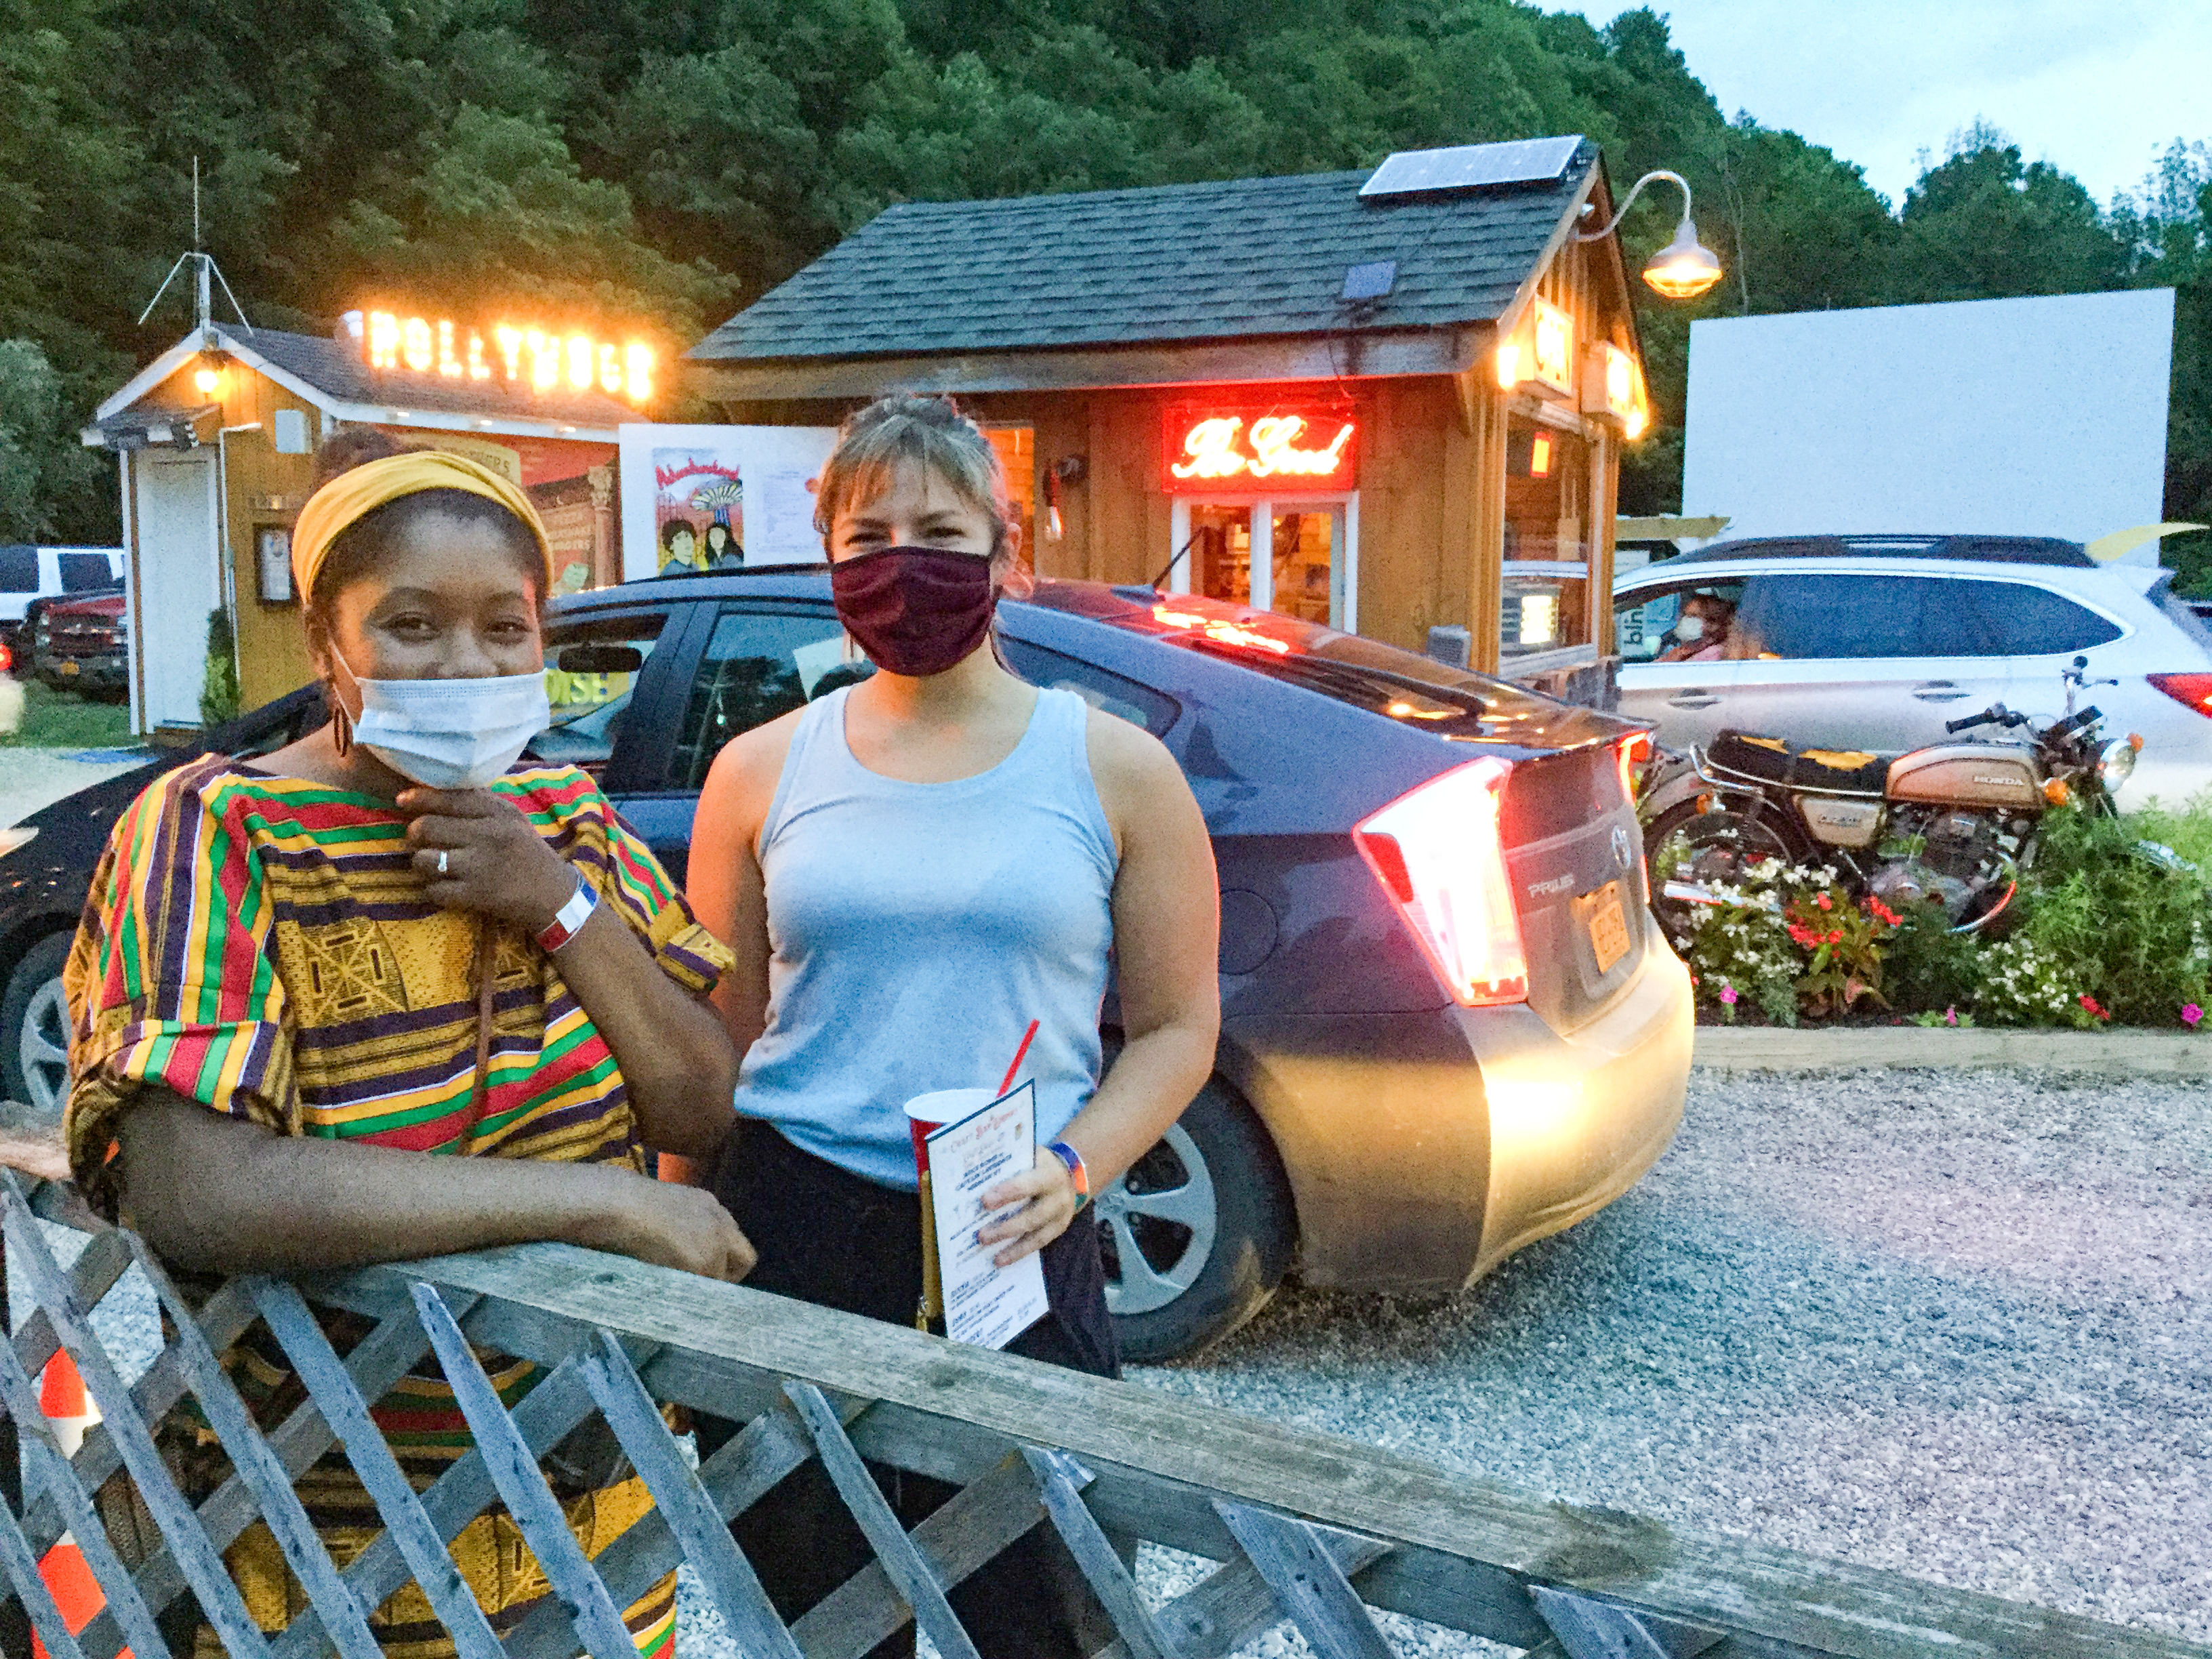 <strong>Abigail Herace, left, and Liz Burroughs attended the Social Justice Block Party at Four Brothers Drive-In Theatre in Amenia on Thursday, July 16.<em> Photo by Kaitlin Lyle</em></strong>